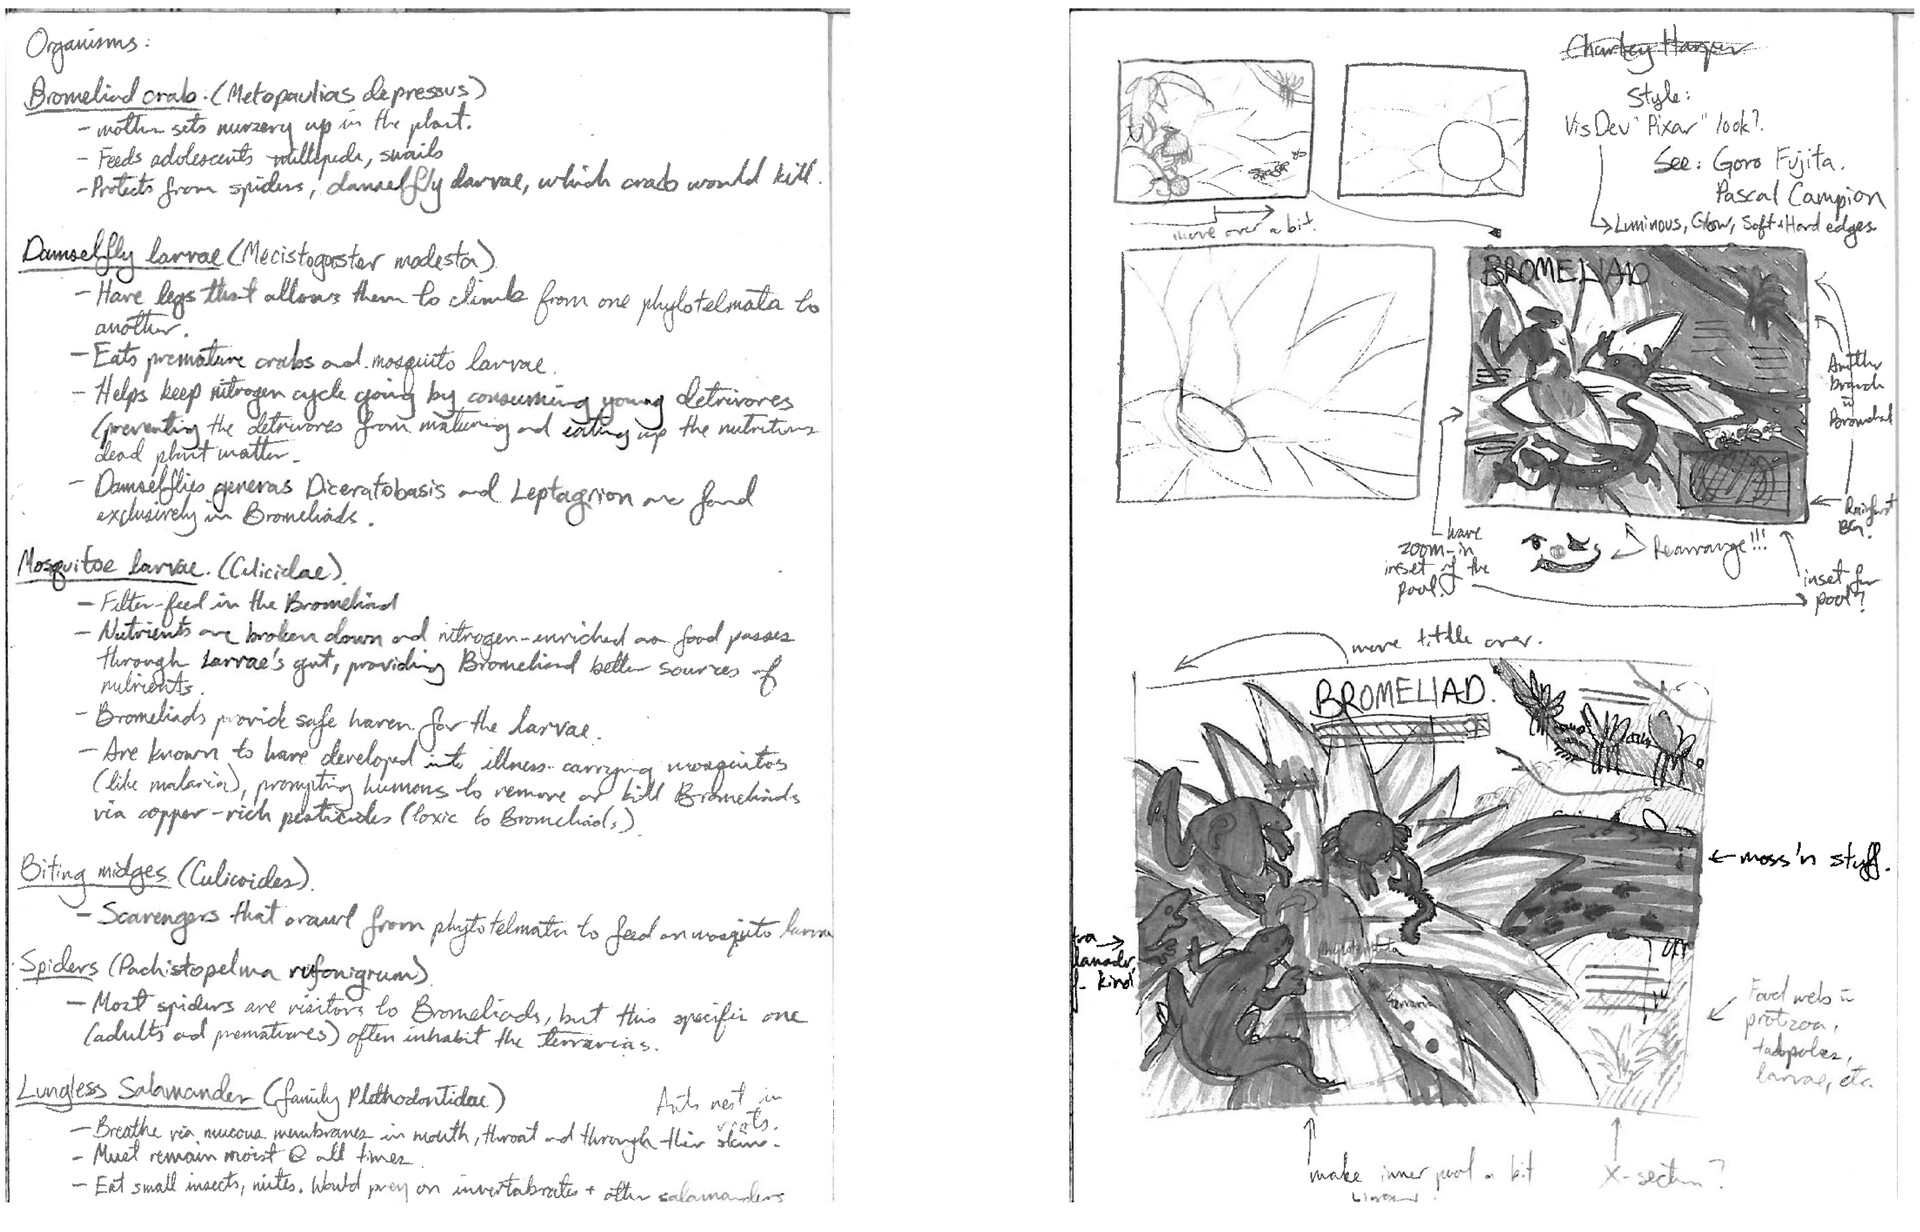 Research and initial thumbnails